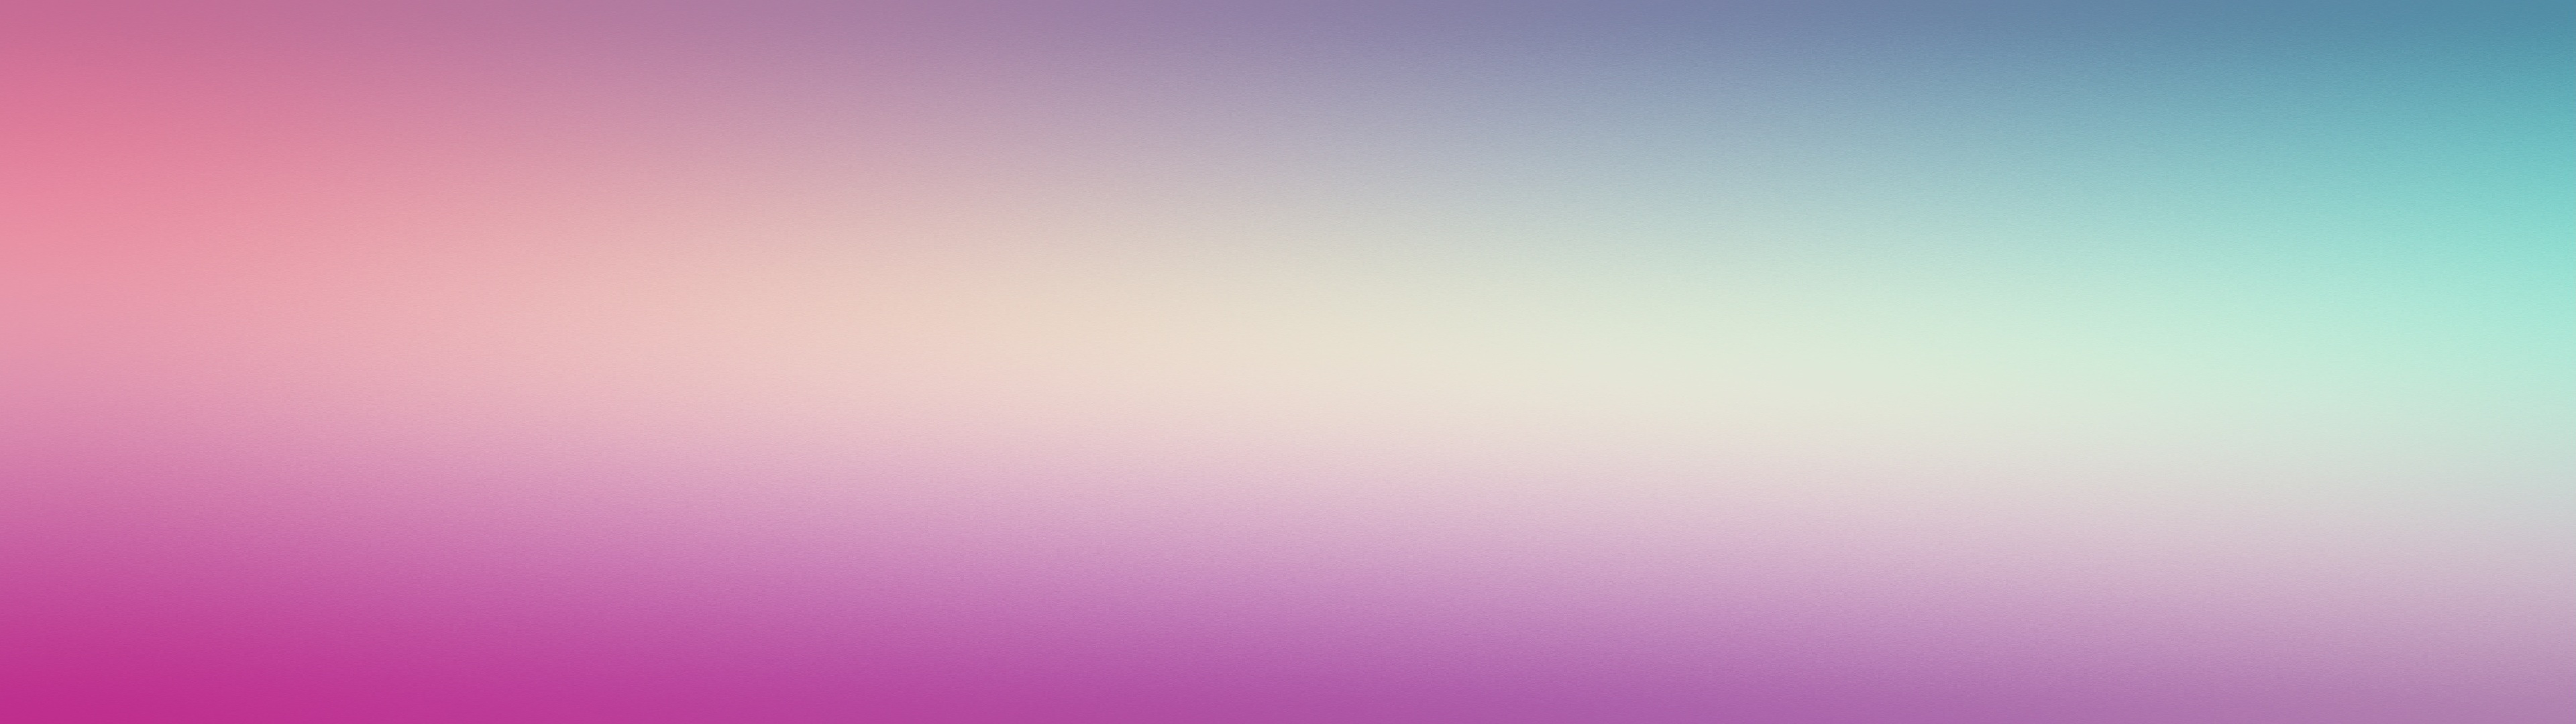 pink wallpapers for iphone 8 plus